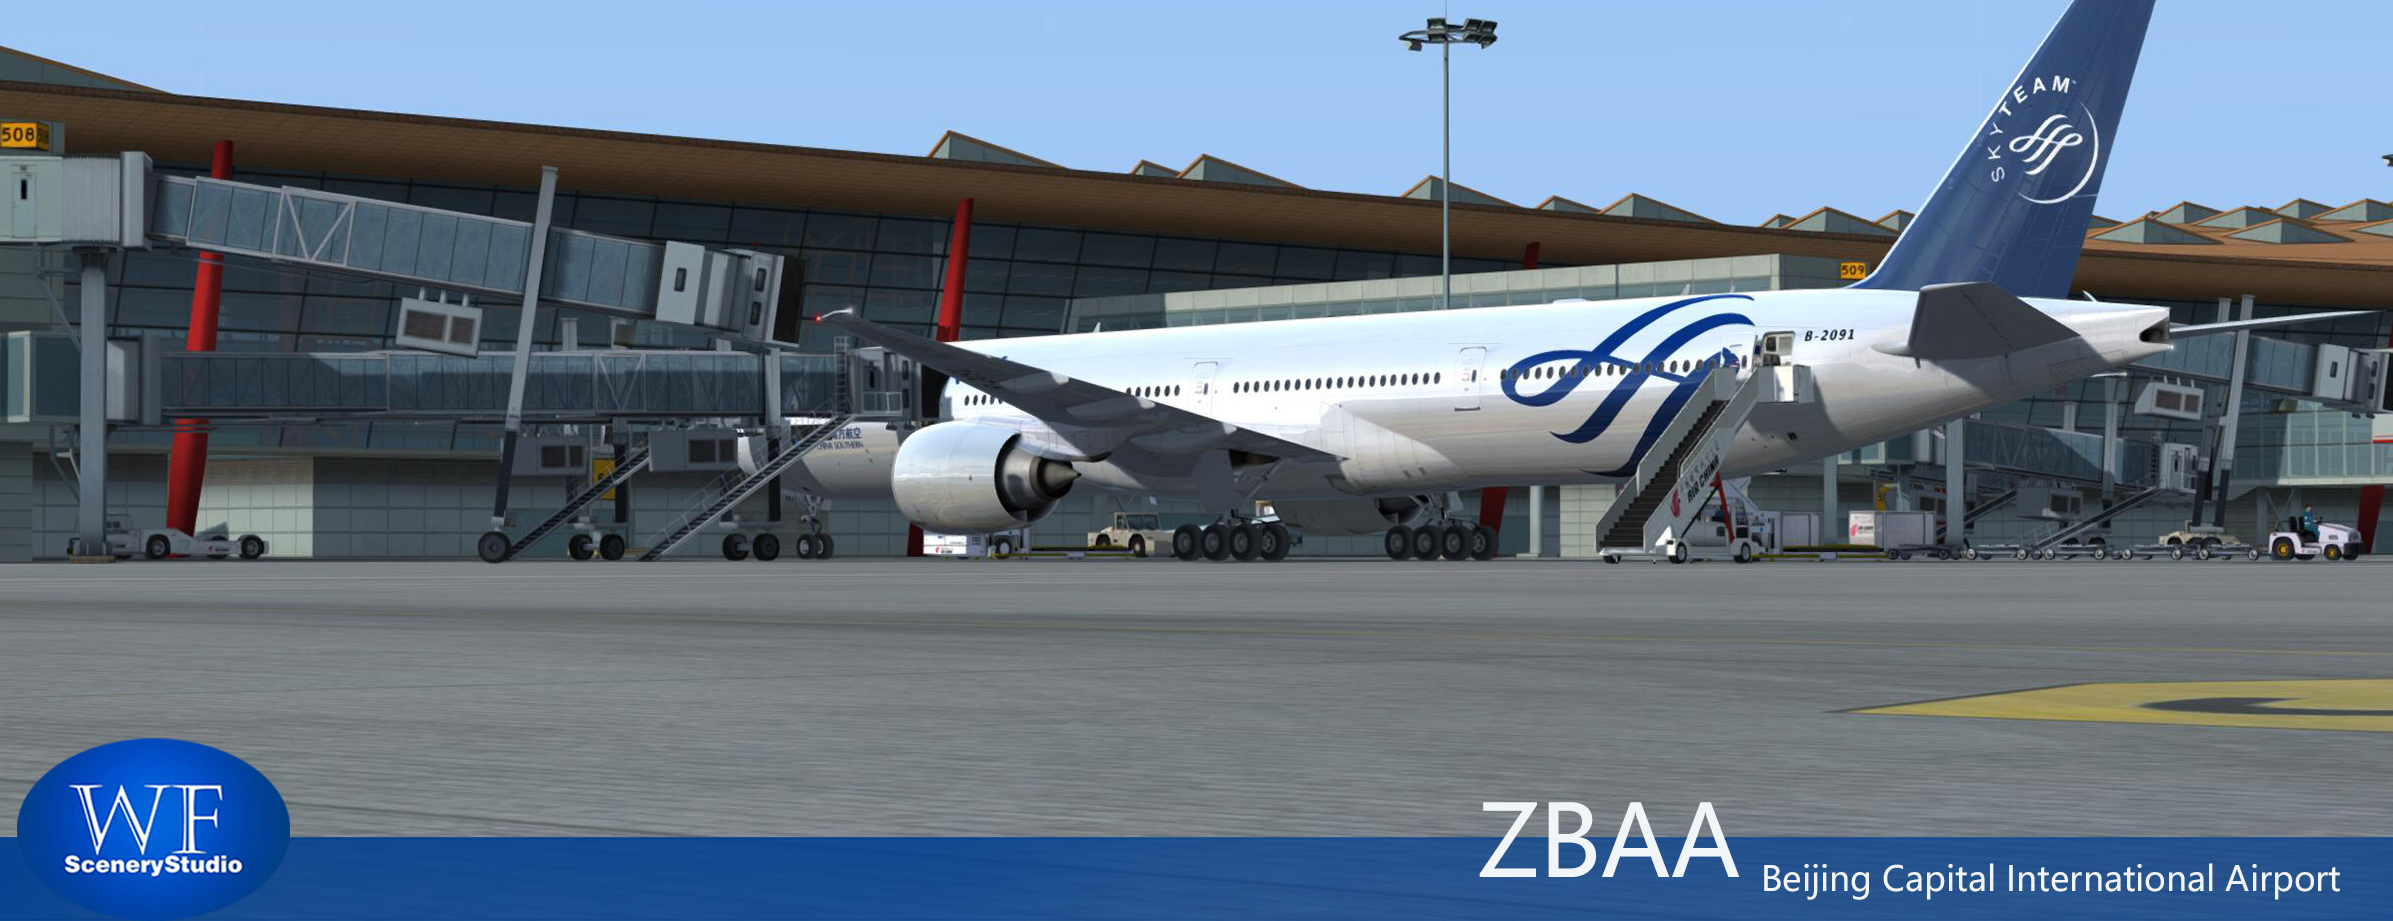 WF SCENERY STUDIO - BEIJING CAPITAL INTERNATIONAL AIRPORT ZBAA P3D4